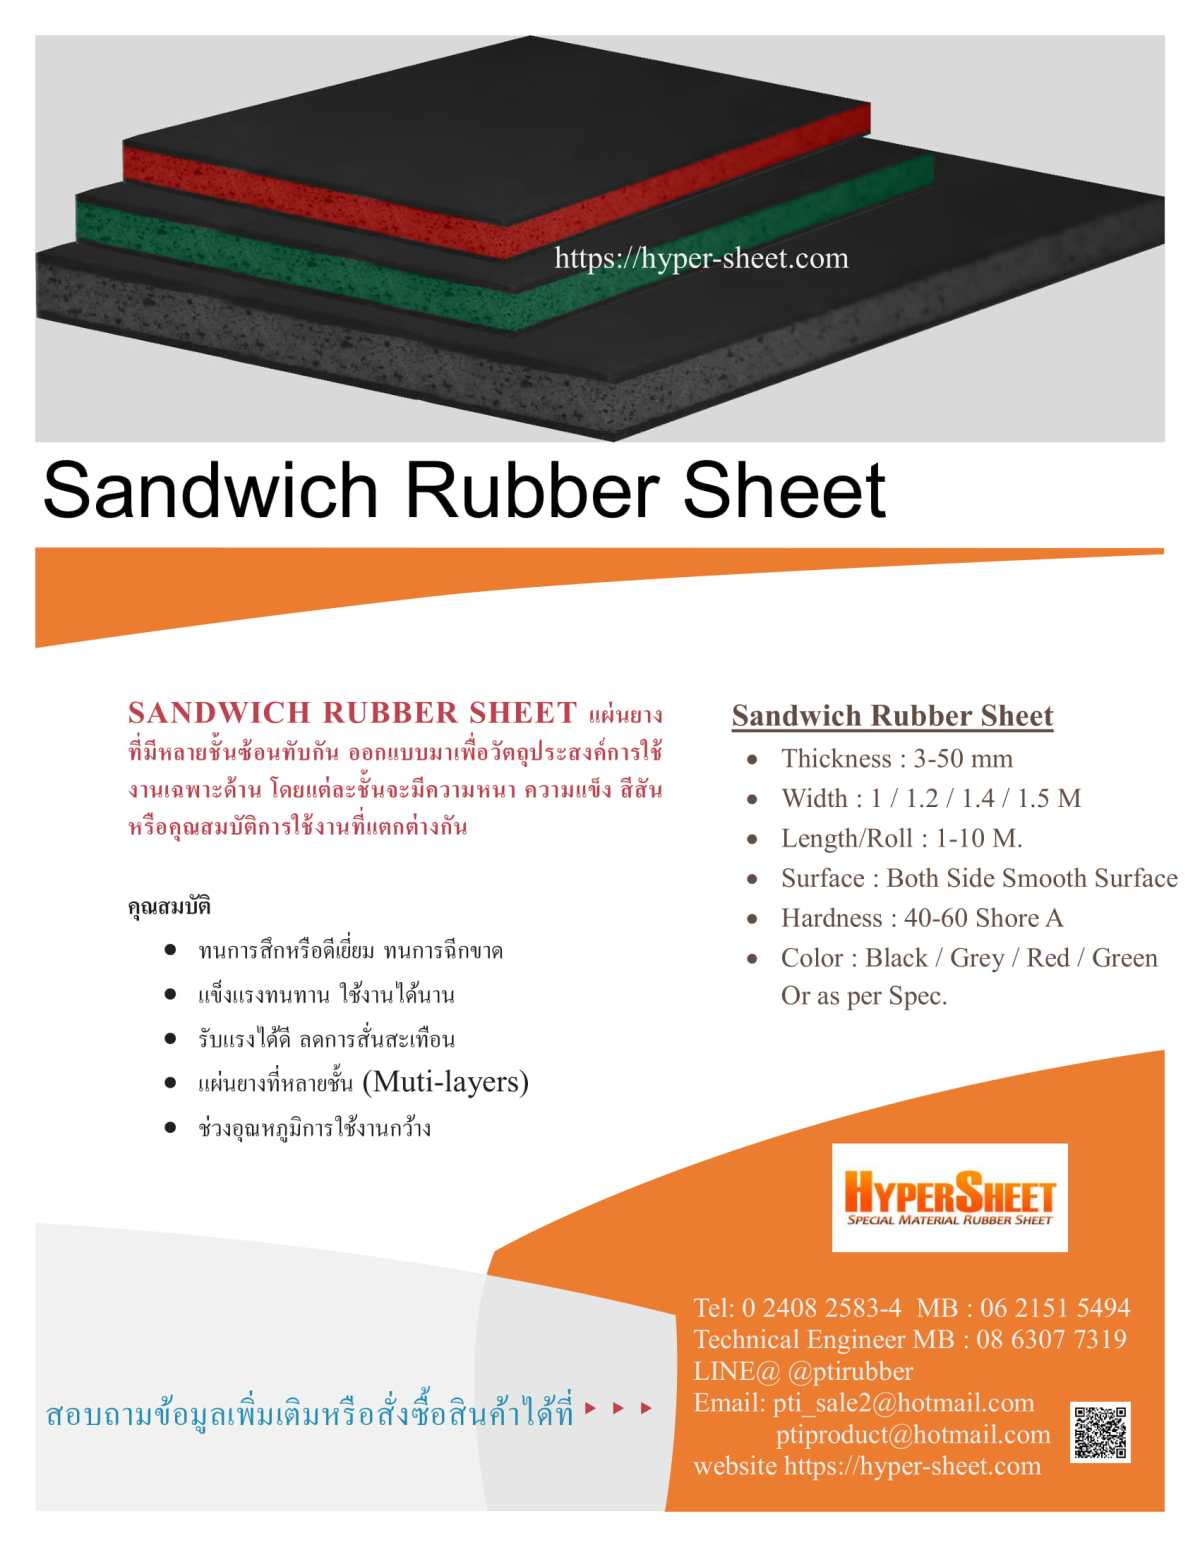 แผ่่นยาง sandwich Rubber sheet-1.jpg